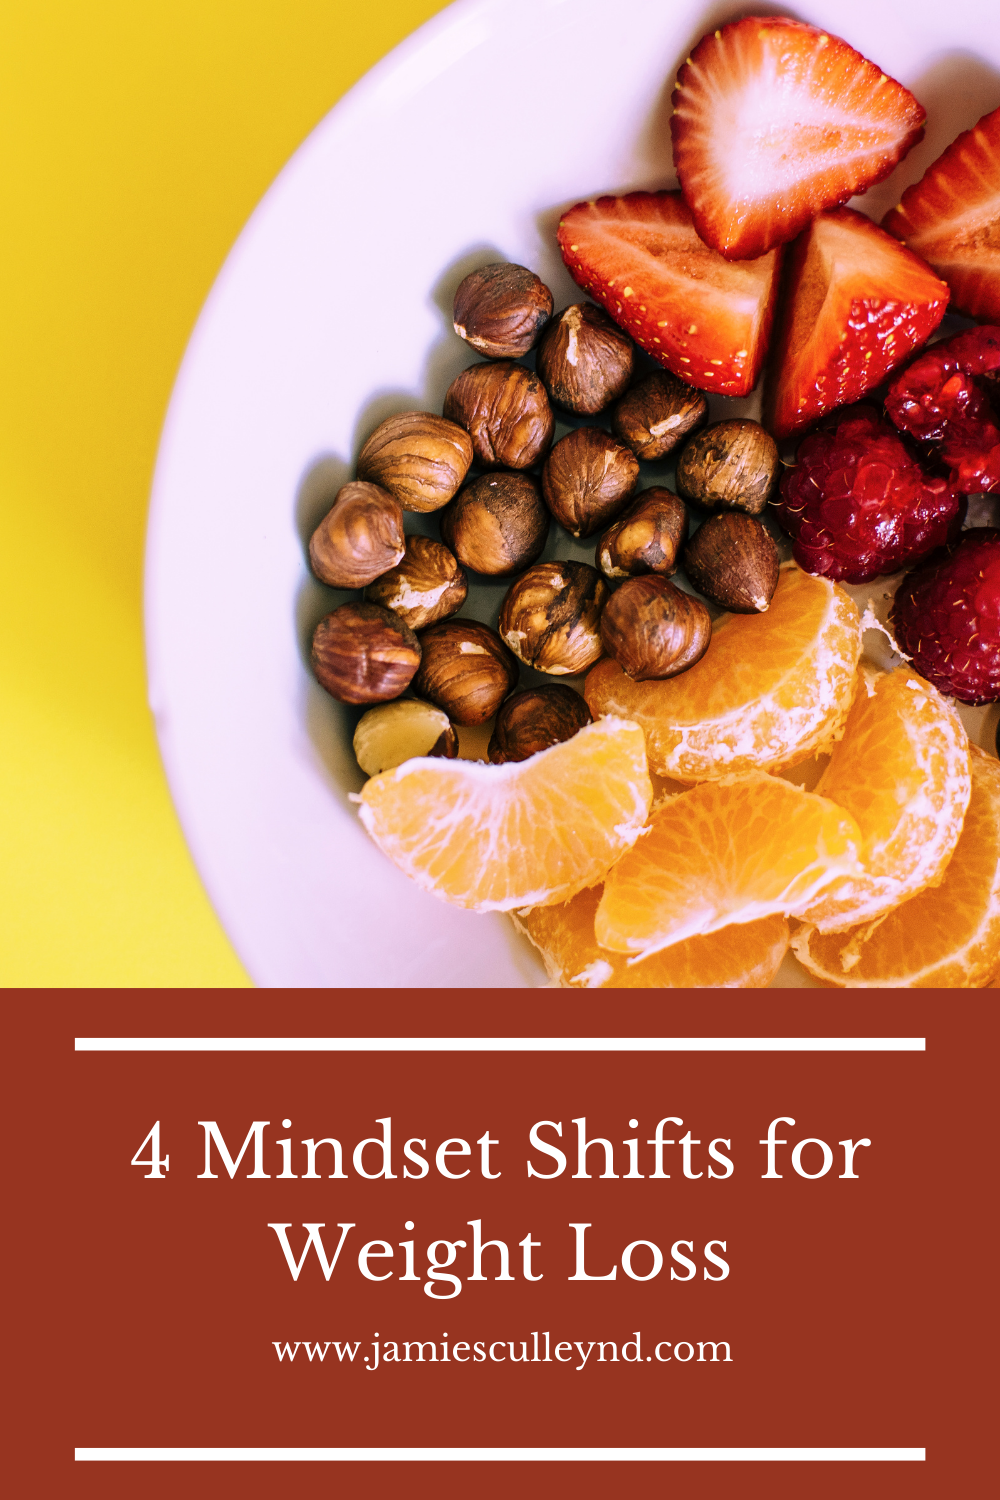 plate full of strawberries, nuts and oranges 4 mindset shifts for weight loss